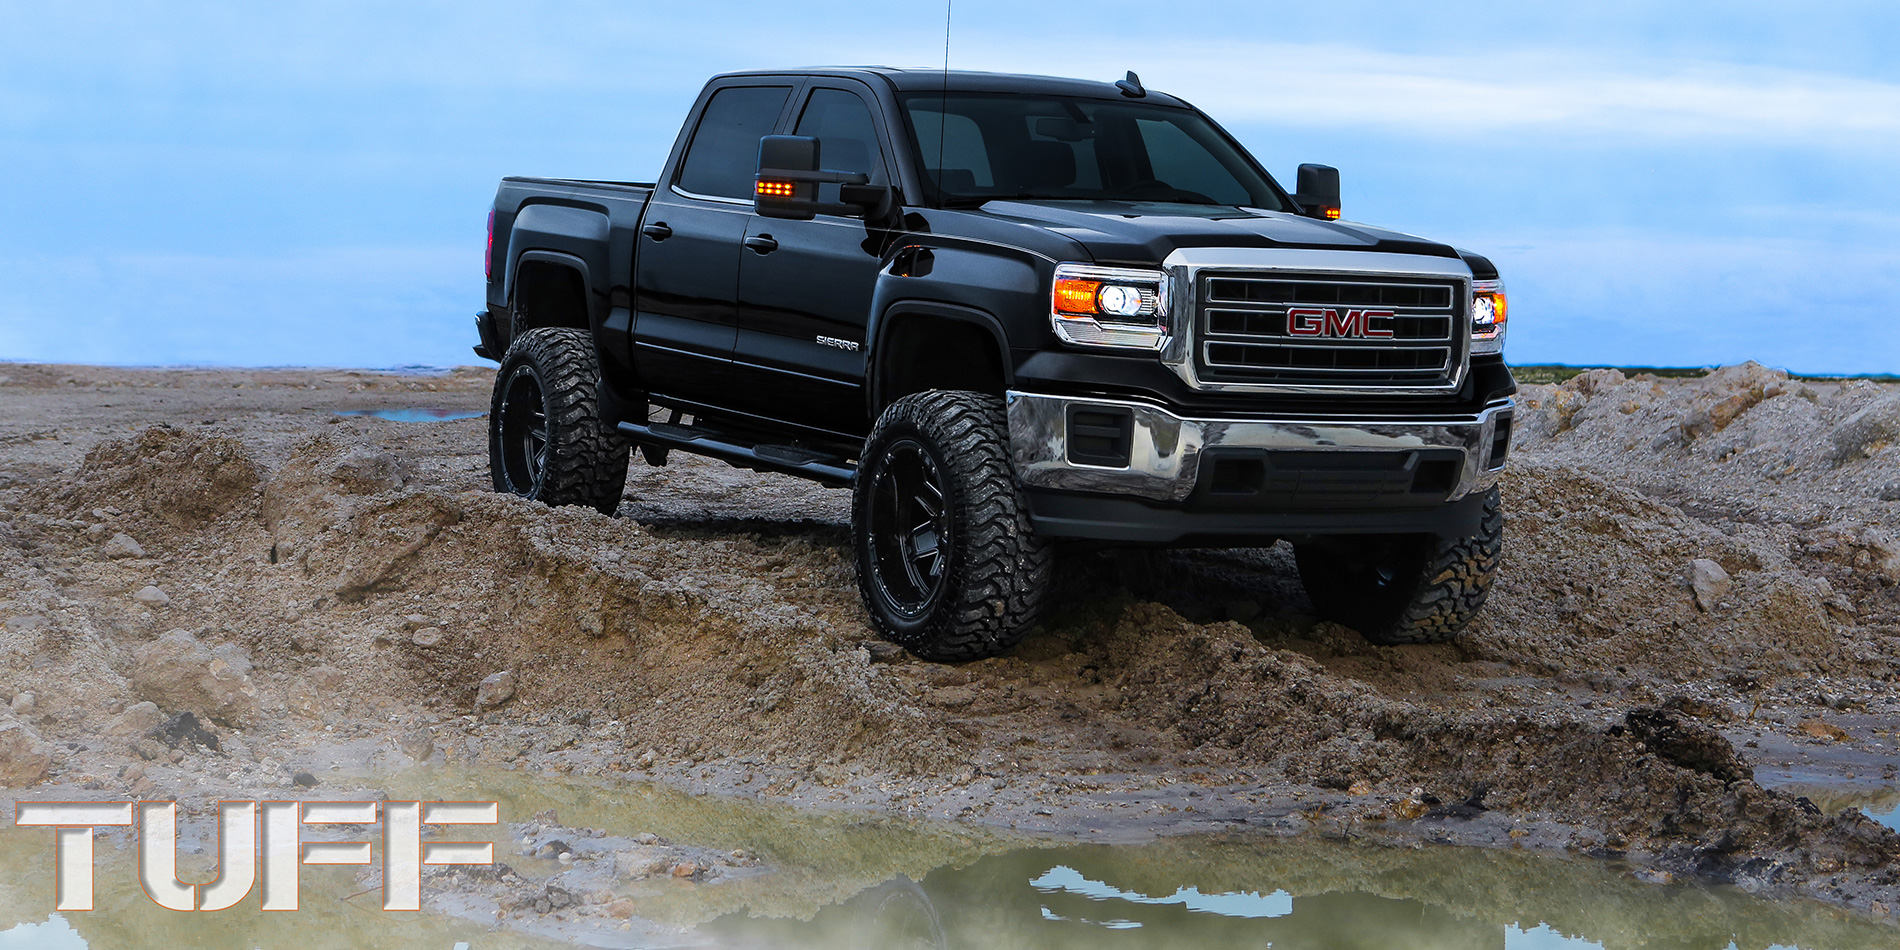 blackbuickgmc furthermore Watch besides Chevrolet Silverado High Country 2014 Widescreen Wallpaper Ds16 I5577 furthermore Watch in addition Tuscany Trucks. on 2500 gmc sierra all terrain